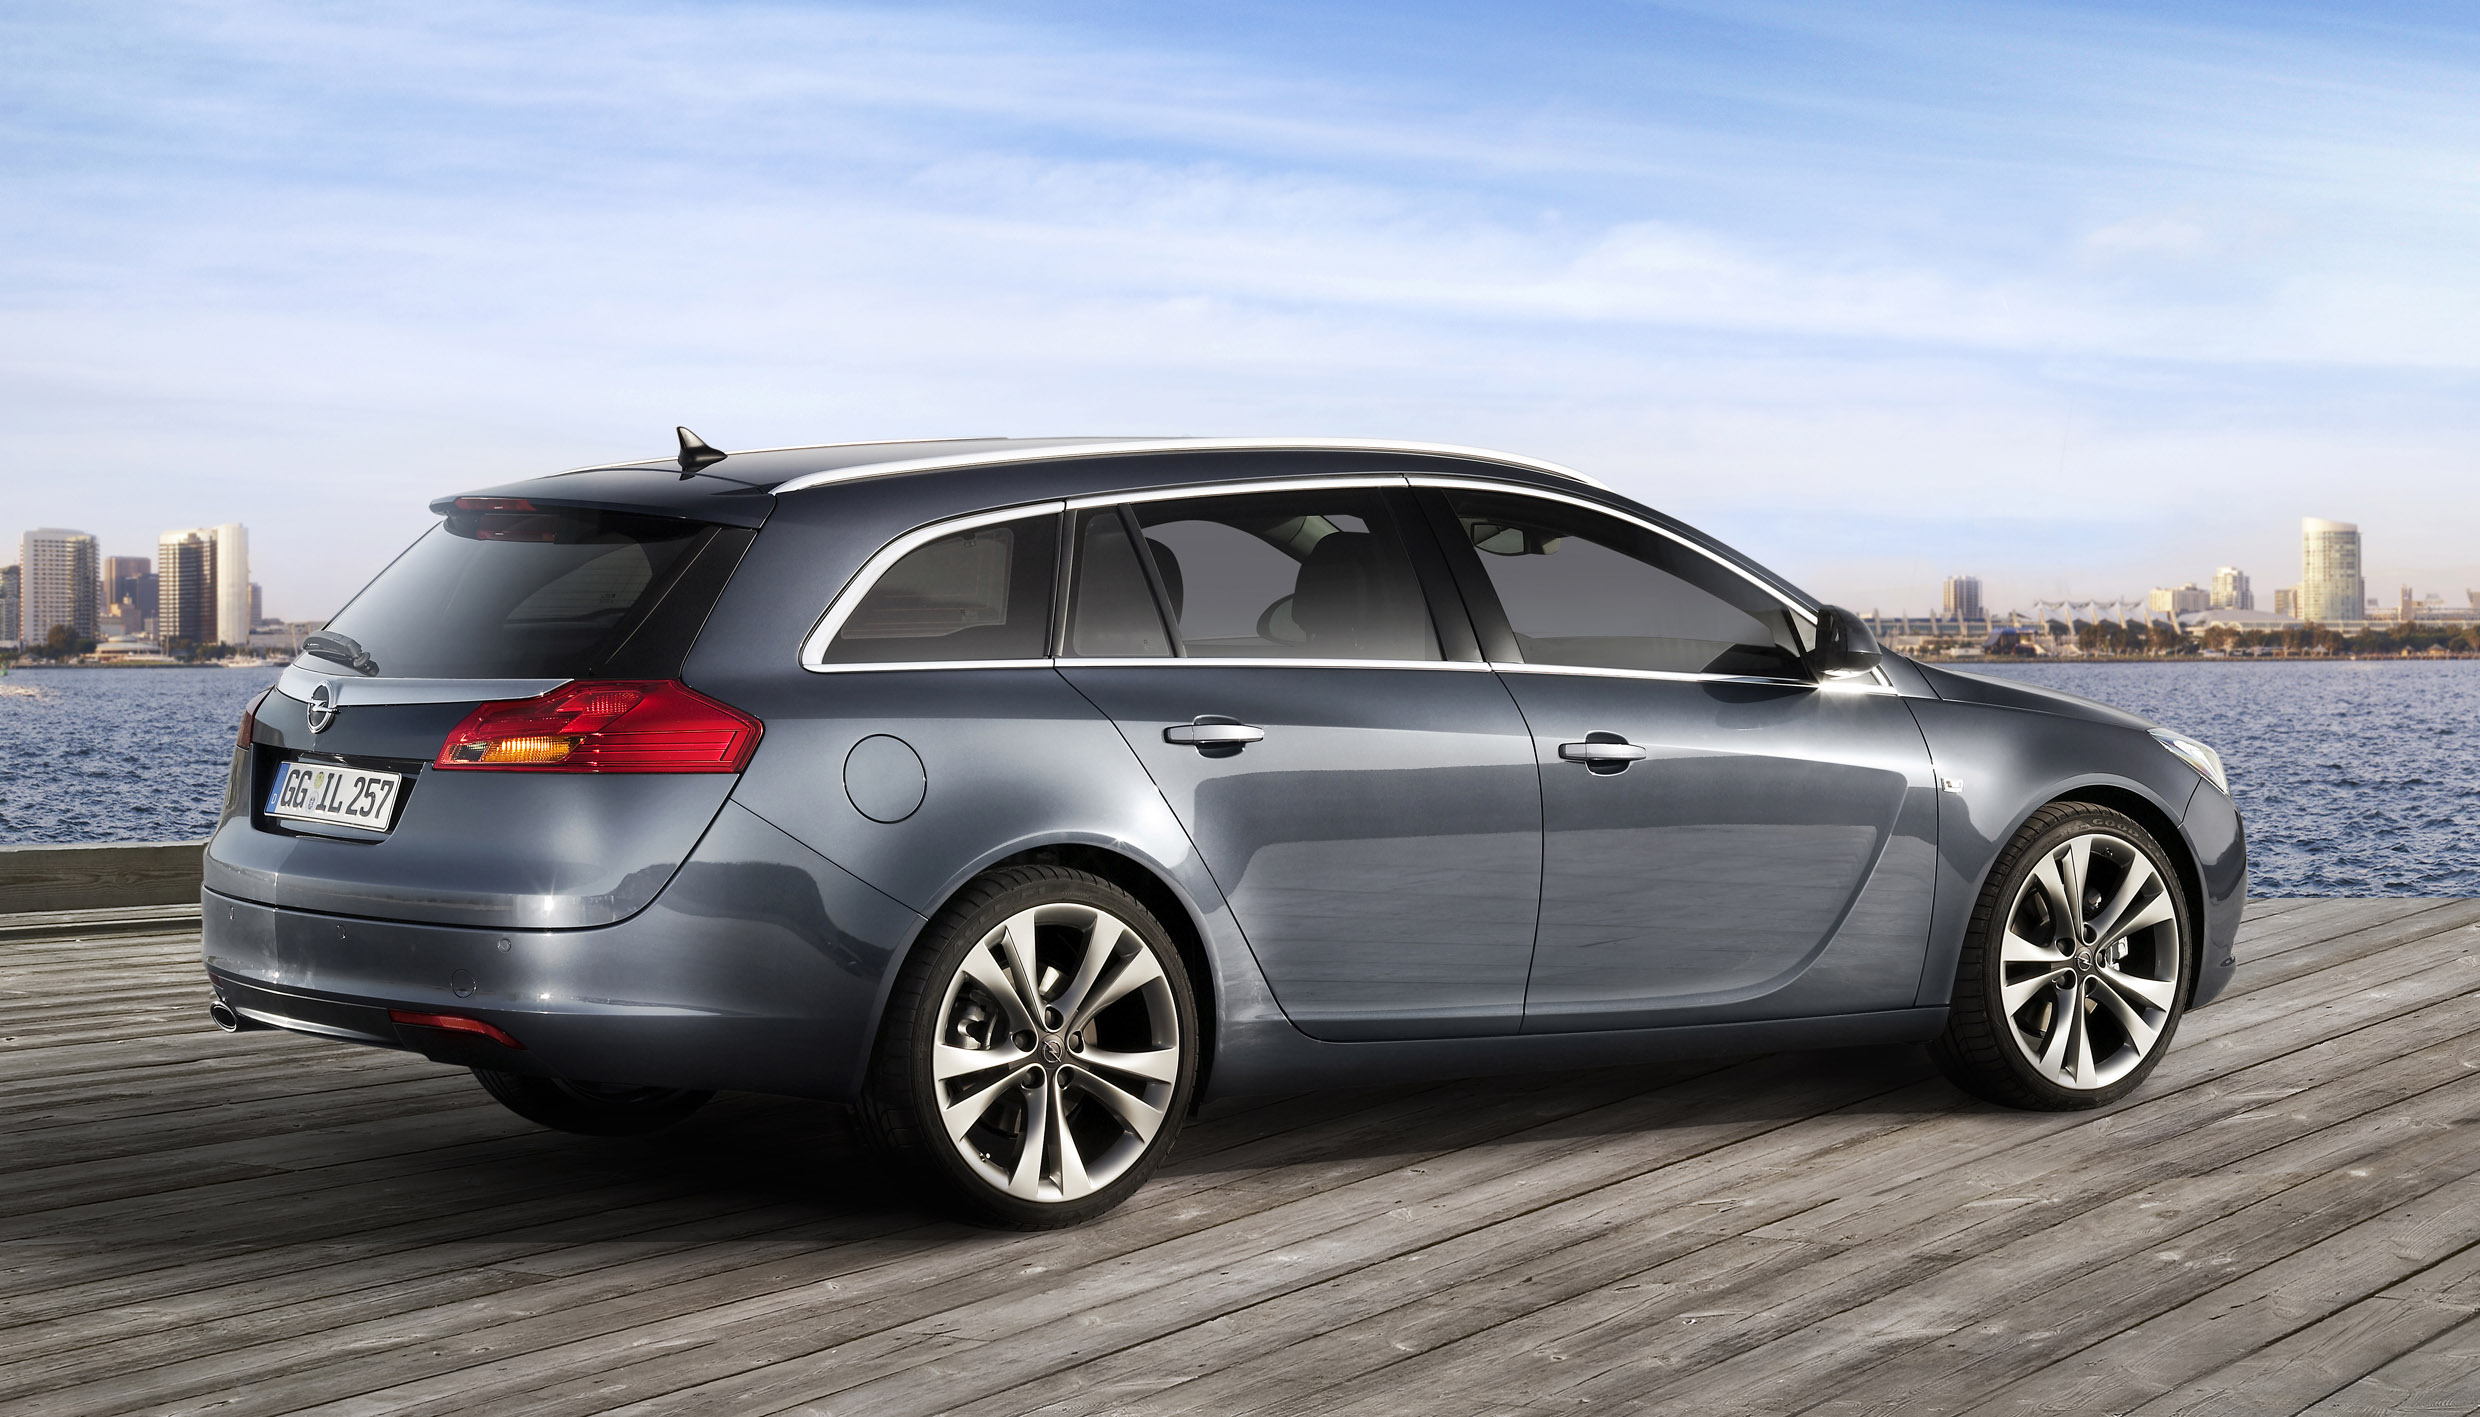 opel insignia sports tourer the new wagon in elegant sportswear. Black Bedroom Furniture Sets. Home Design Ideas